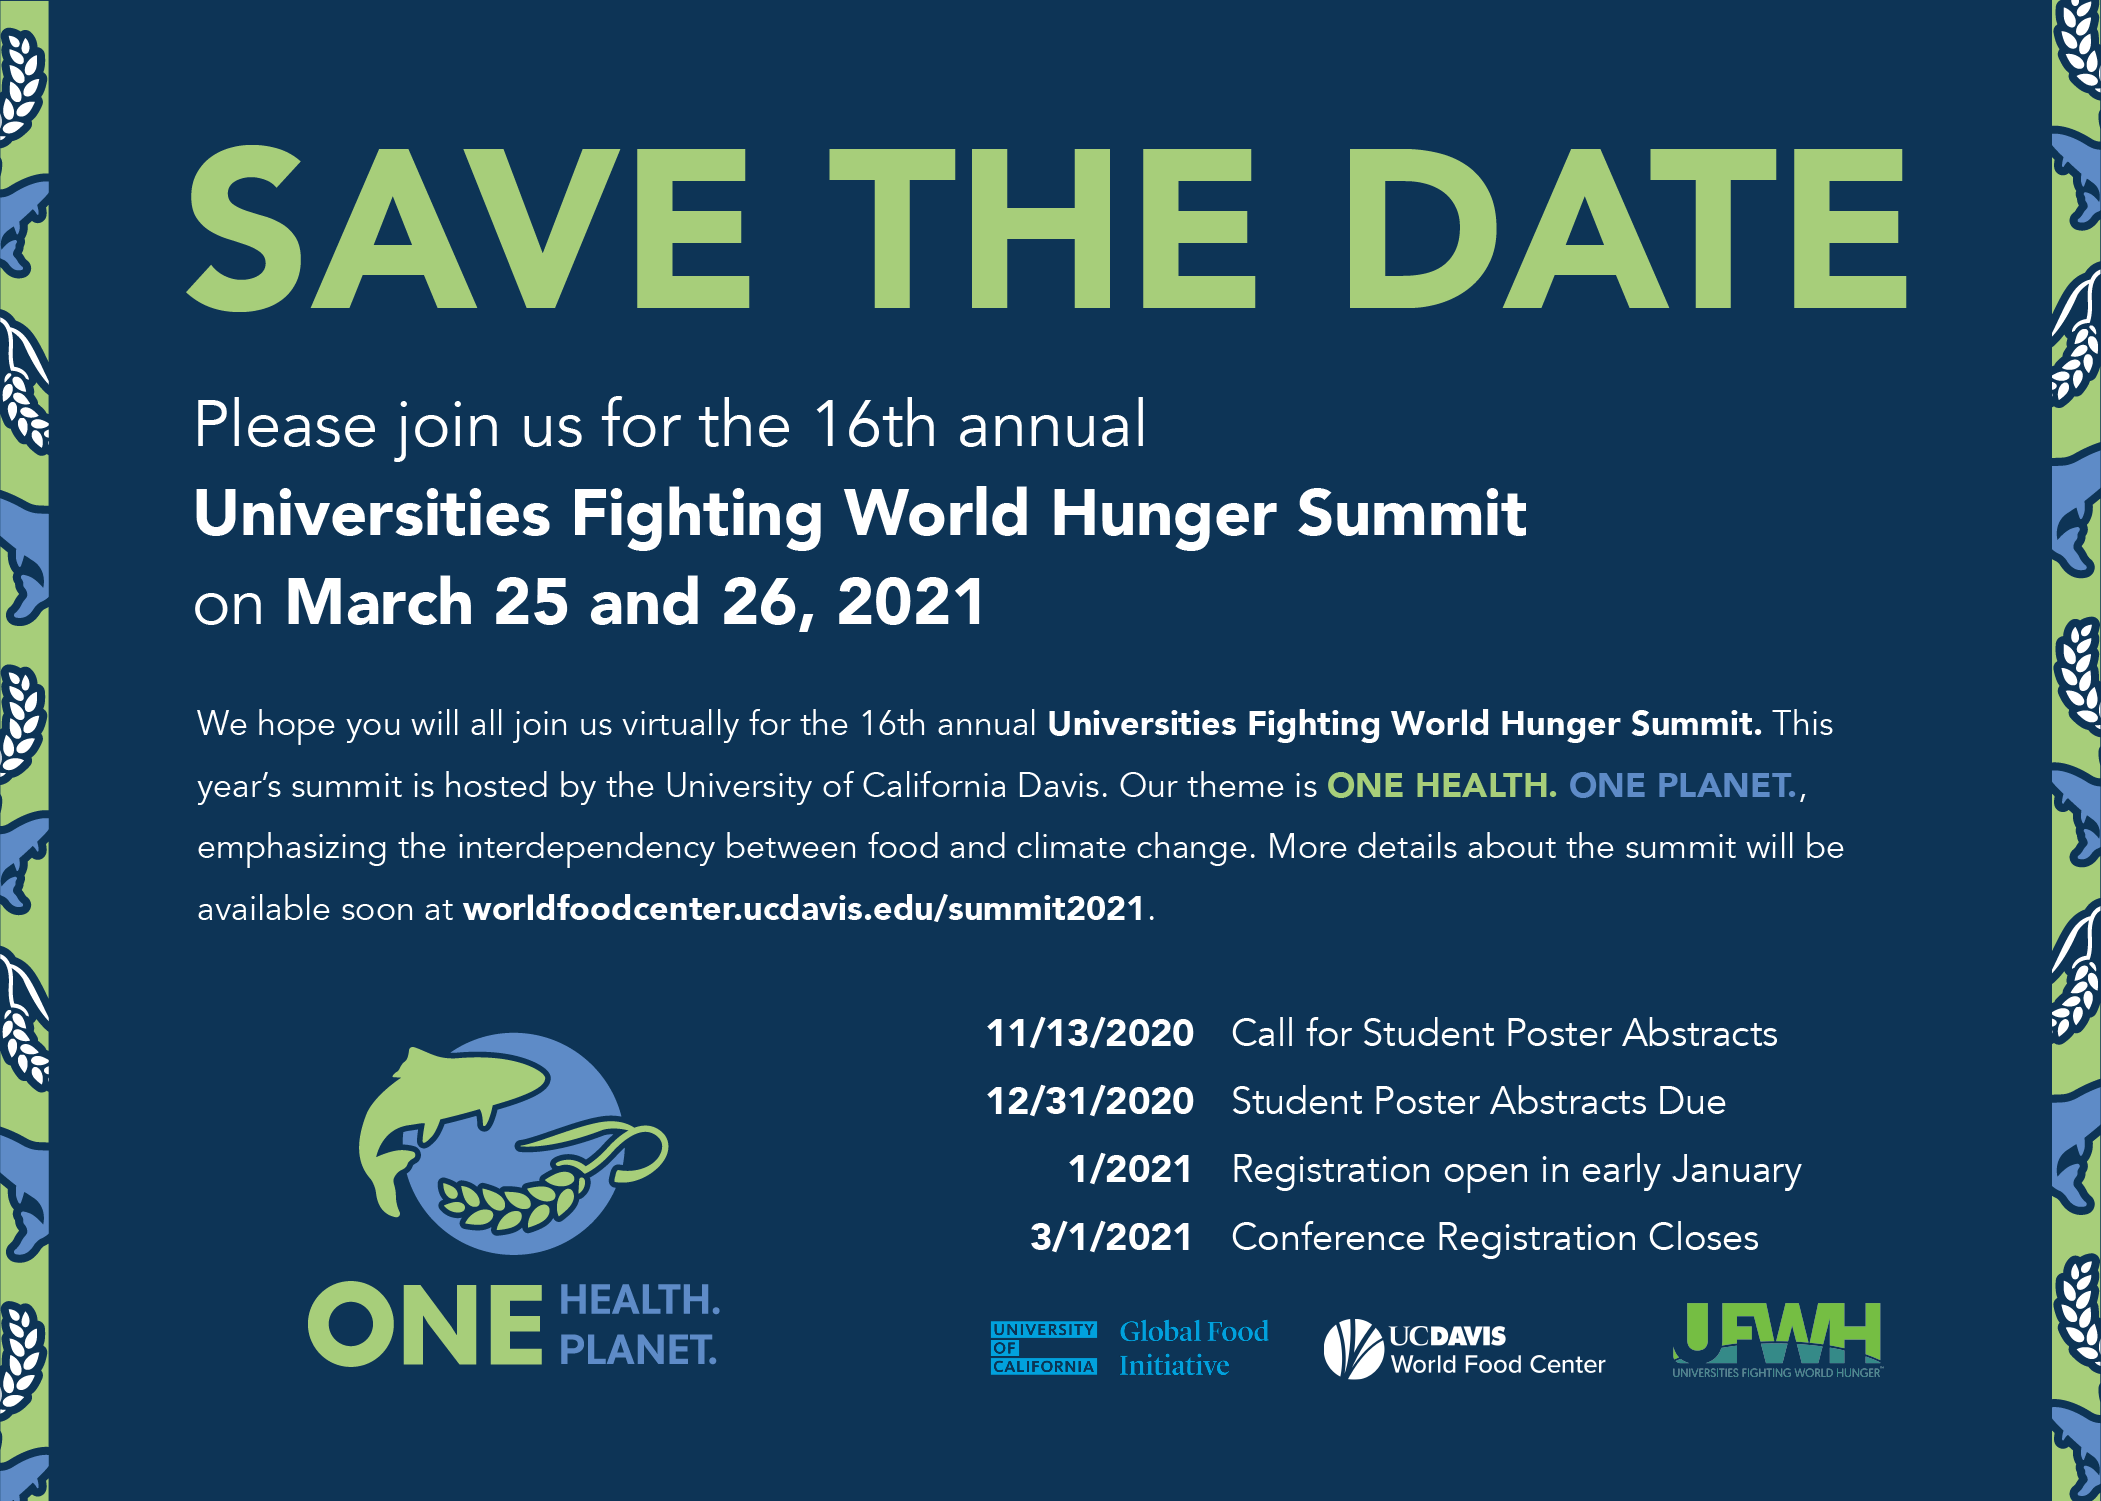 Save the date for the UFWH Summit, March 25-26 2021